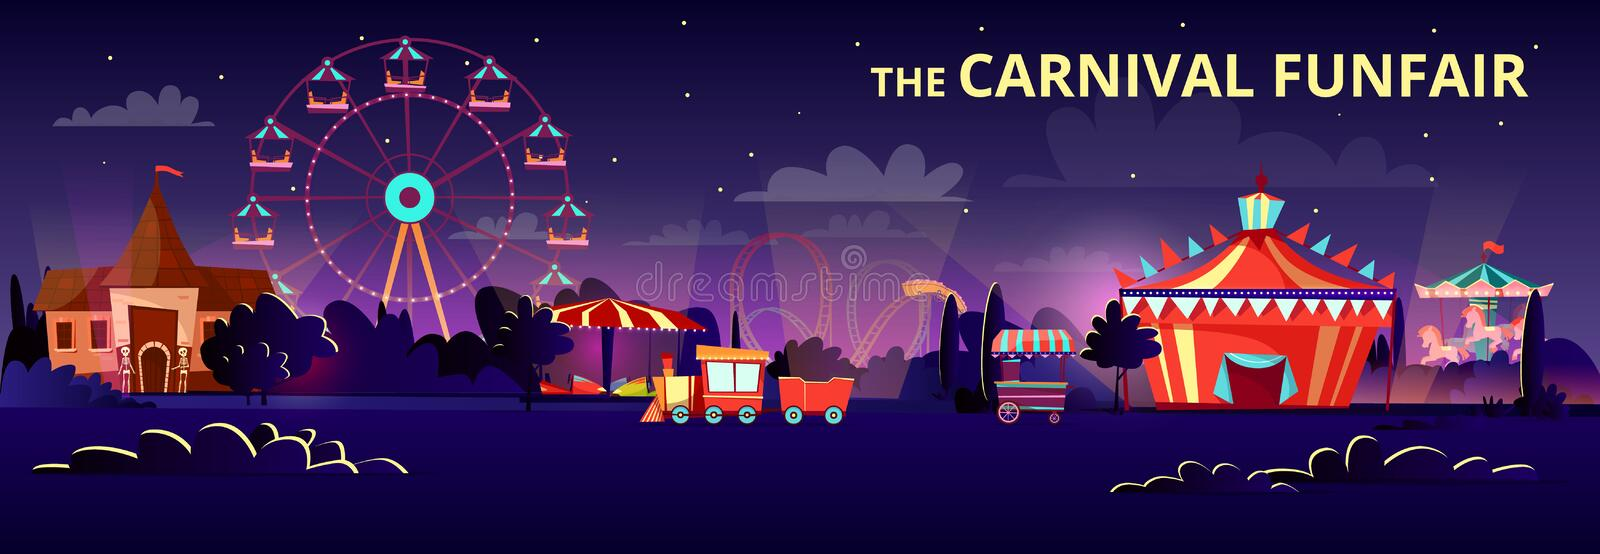 Amusement park vector cartoon illustration of carnival funfair at night with illumination of rides, carousels and circus royalty free illustration